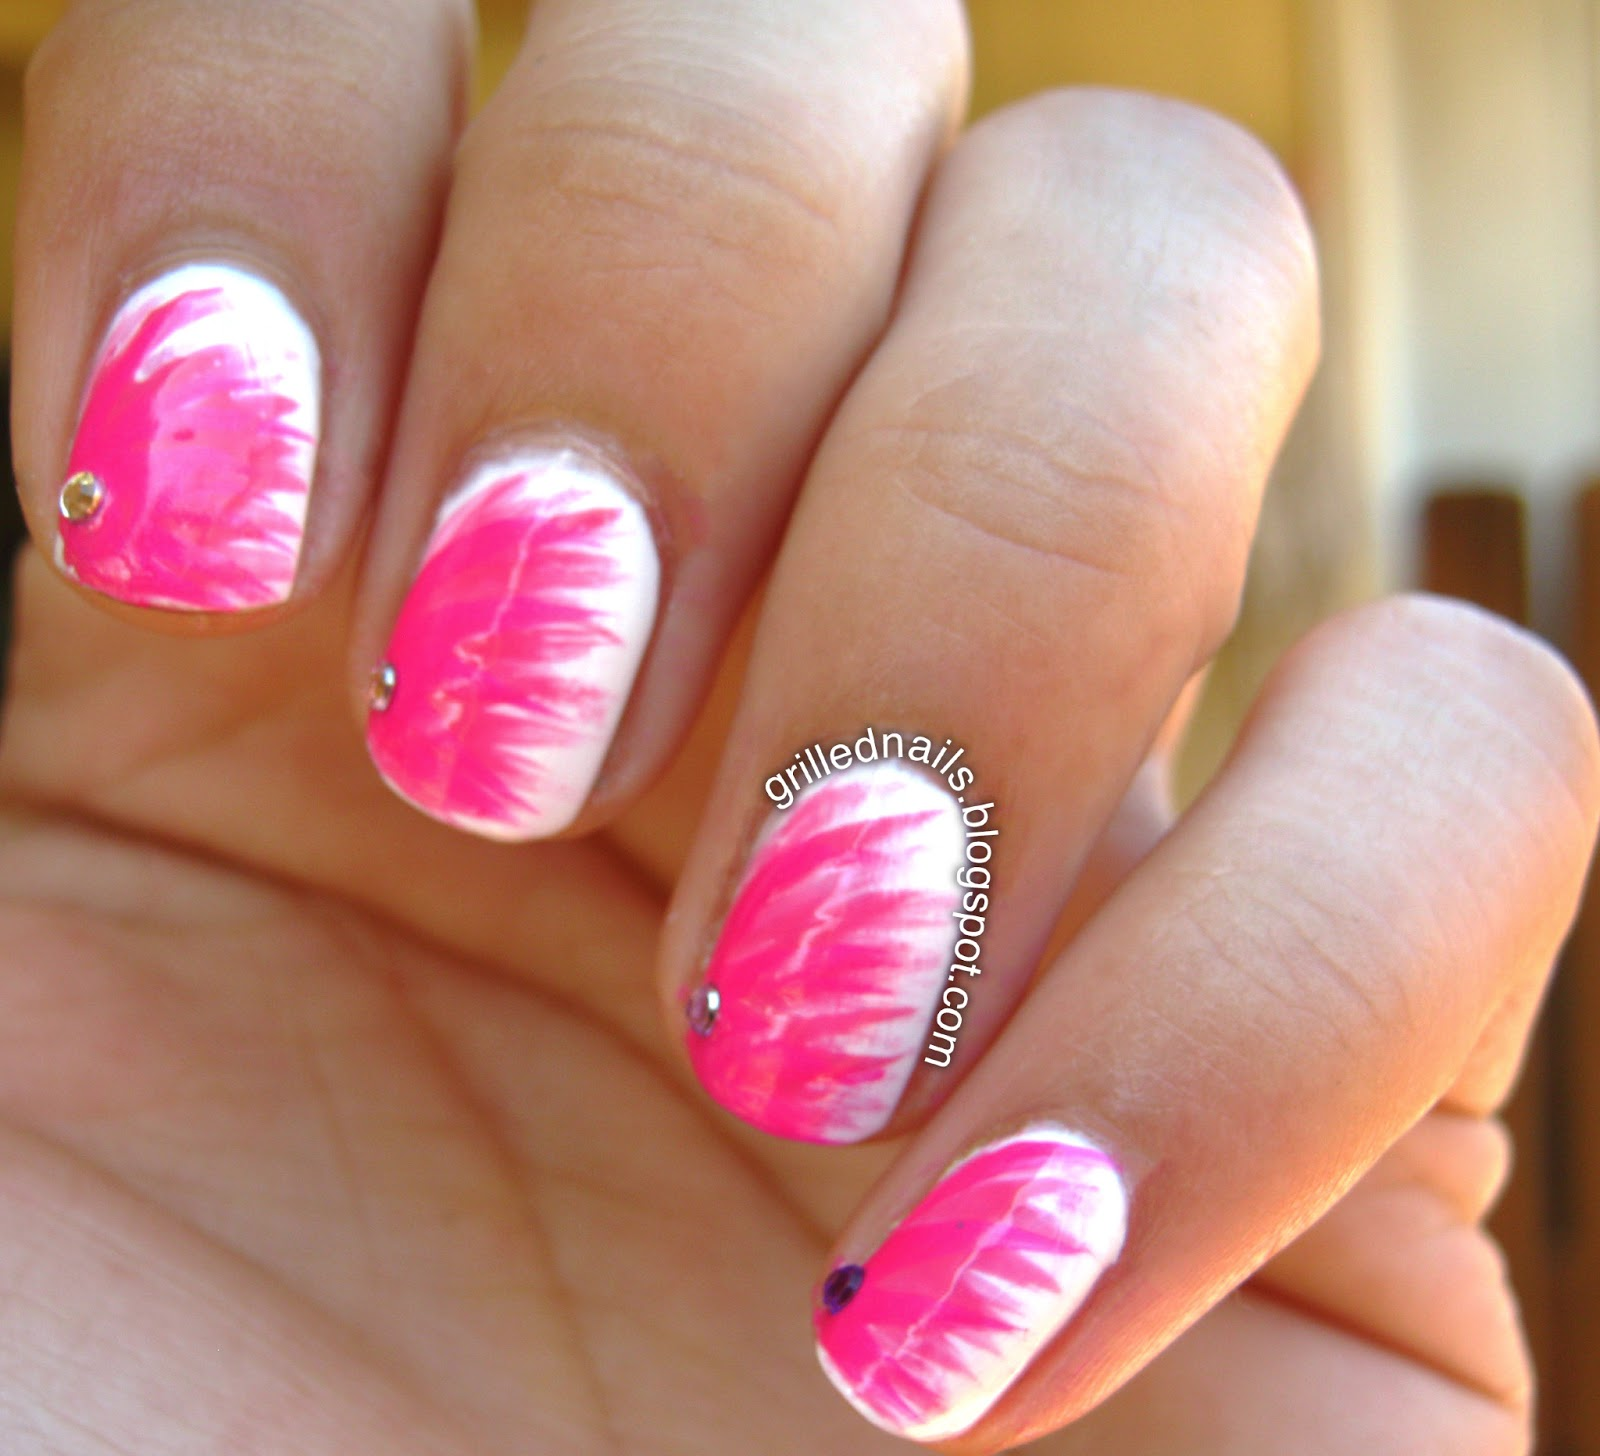 Toe Nail Designs For March: Manicure and pedicure best nail art ...